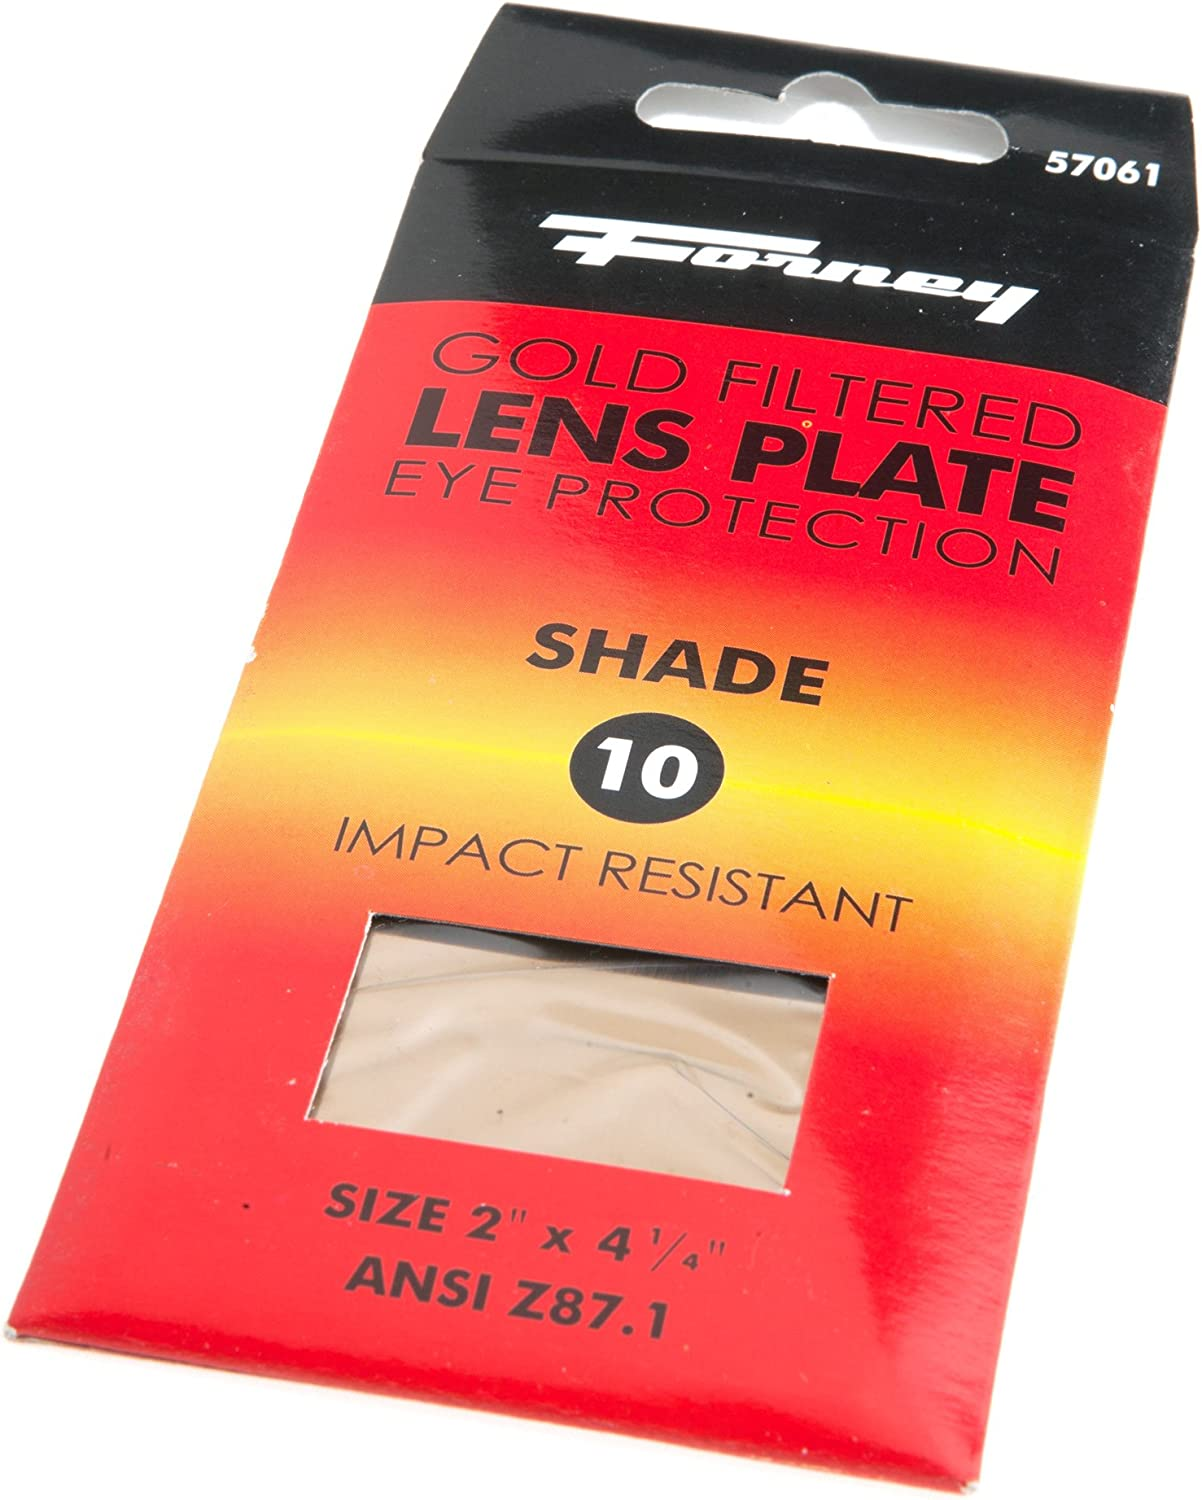 2-Inch-by-4-1//4-Inch Forney 57061 Lens Replacement Gold Welding Filter Shade-10